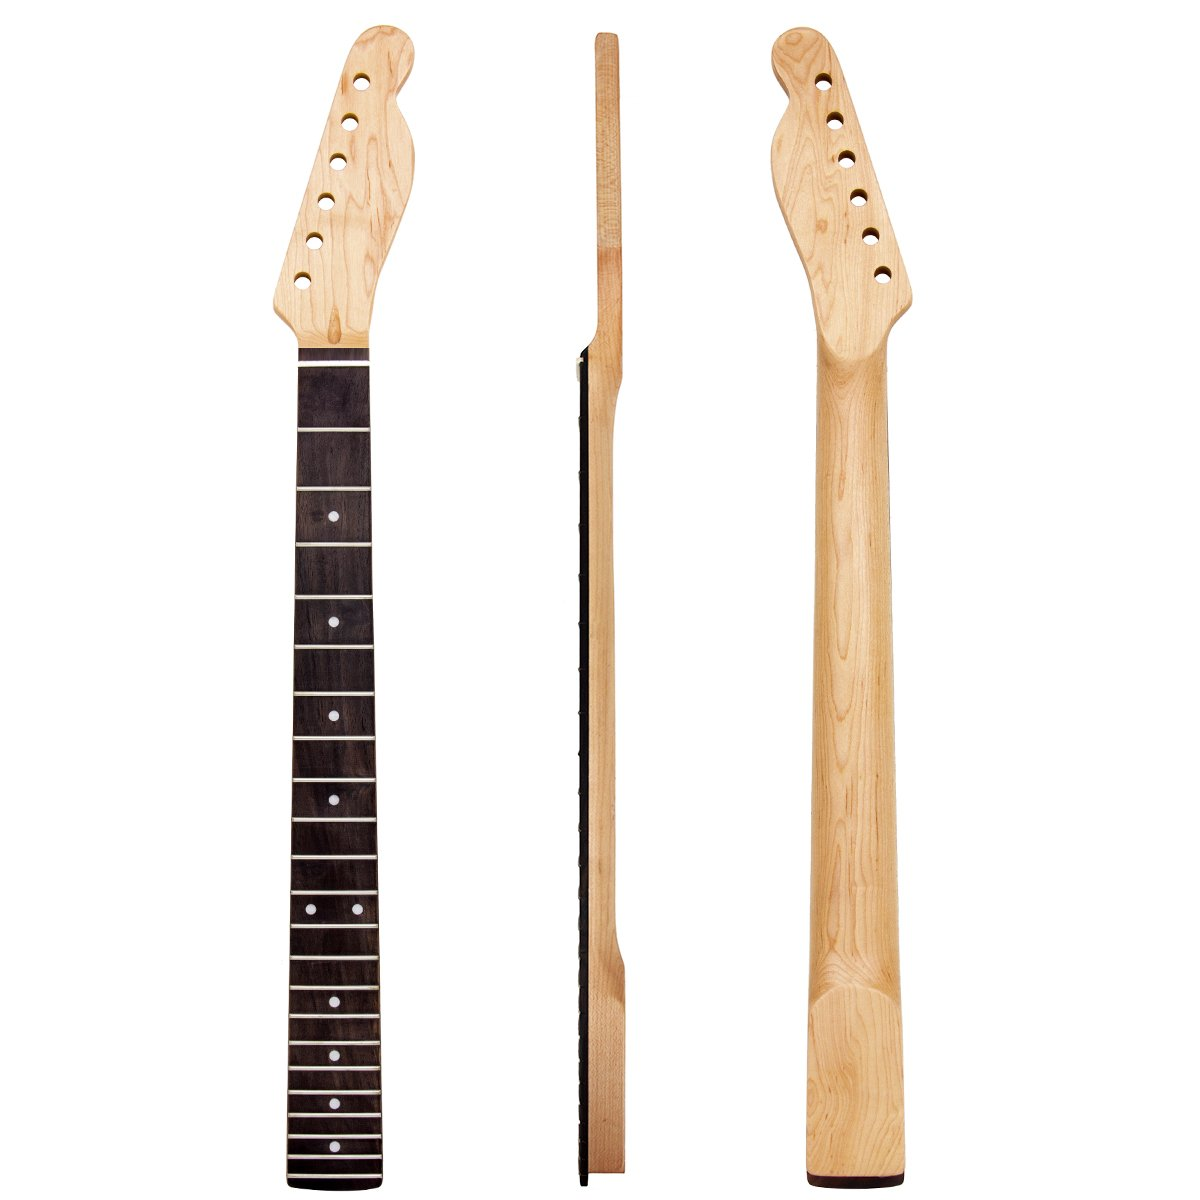 Matt style Finished Electric Guitar Neck 22 Frets Rosewood Fretboard Replacement wholesale 4pcs by Kmise (Image #2)